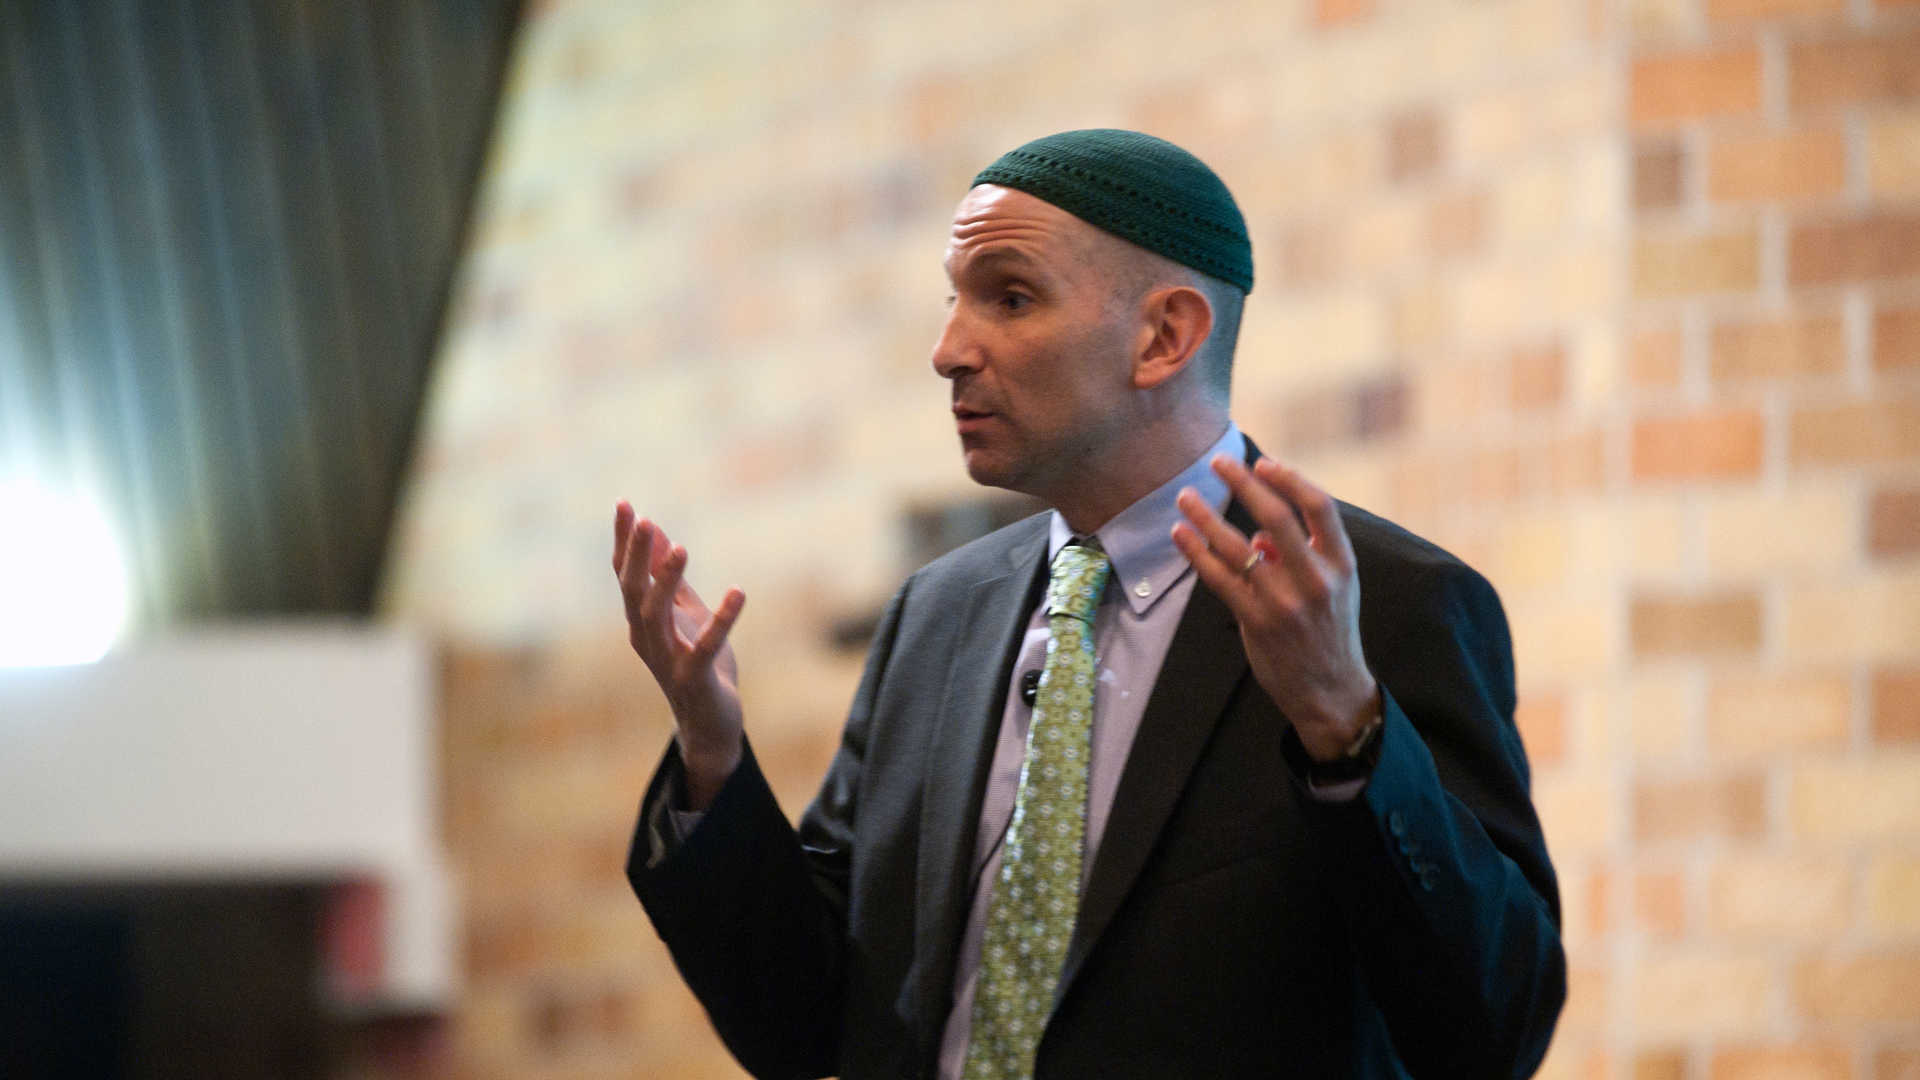 Rabbi Will Berkowitz speaks at an event.